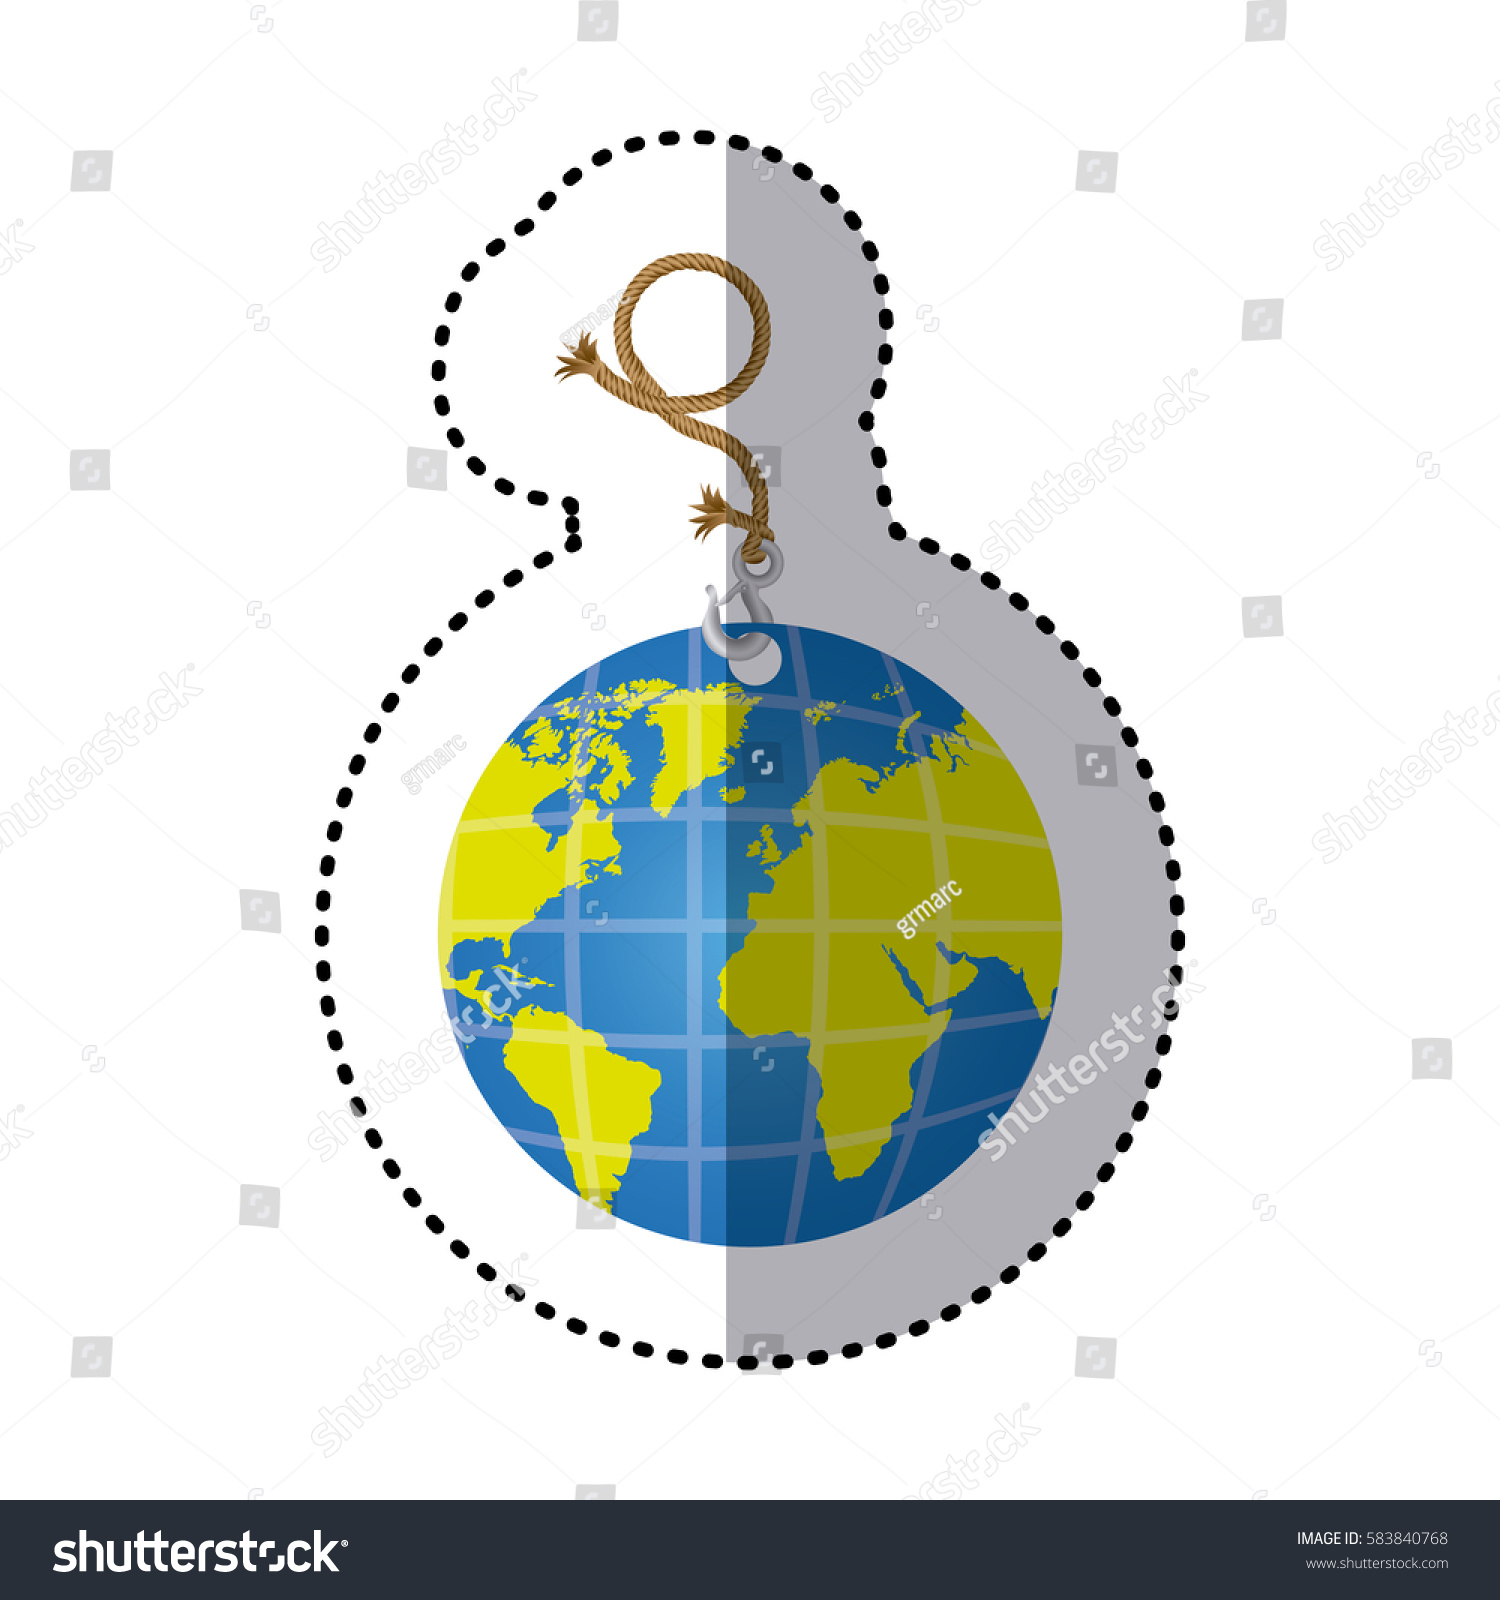 Sticker hanging rope metal hook earth stock vector 583840768 sticker hanging rope with metal hook and earth world map vector illustration gumiabroncs Choice Image